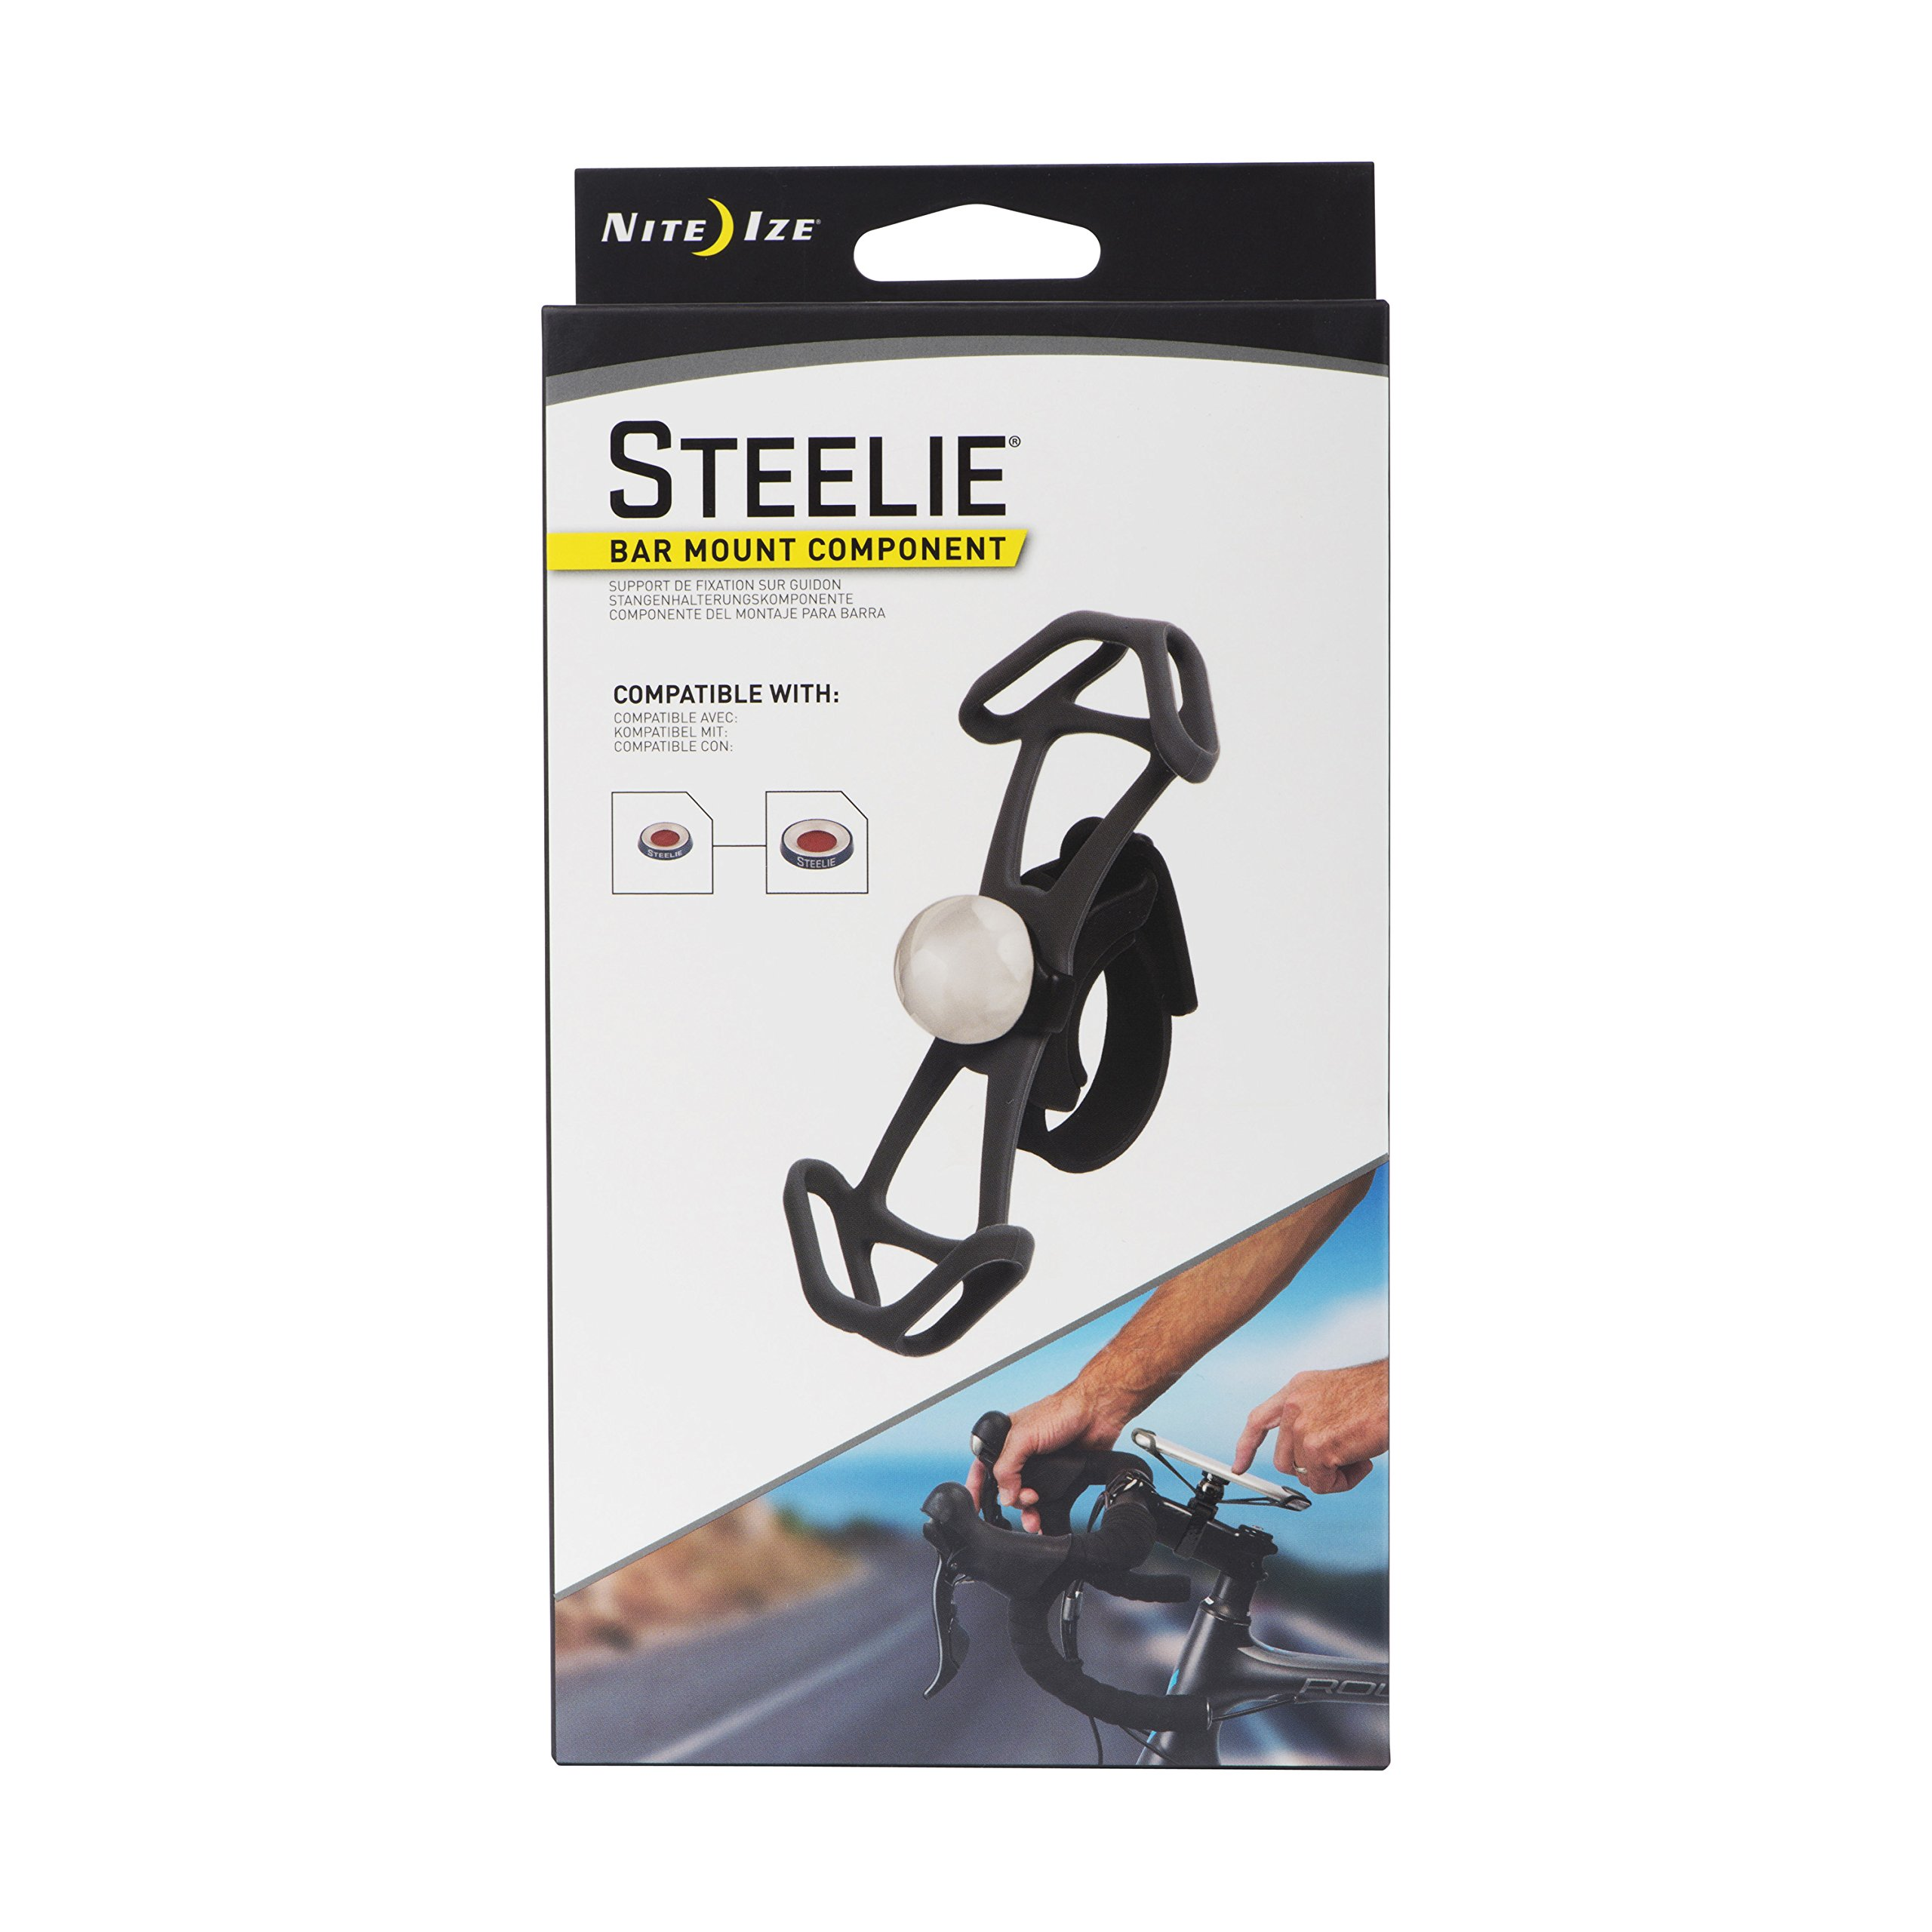 Nite Ize Original Steelie Bar Mount - Magnetic Smartphone Mount for Handlebars, Ideal for Bikes, Motorcycles, Strollers